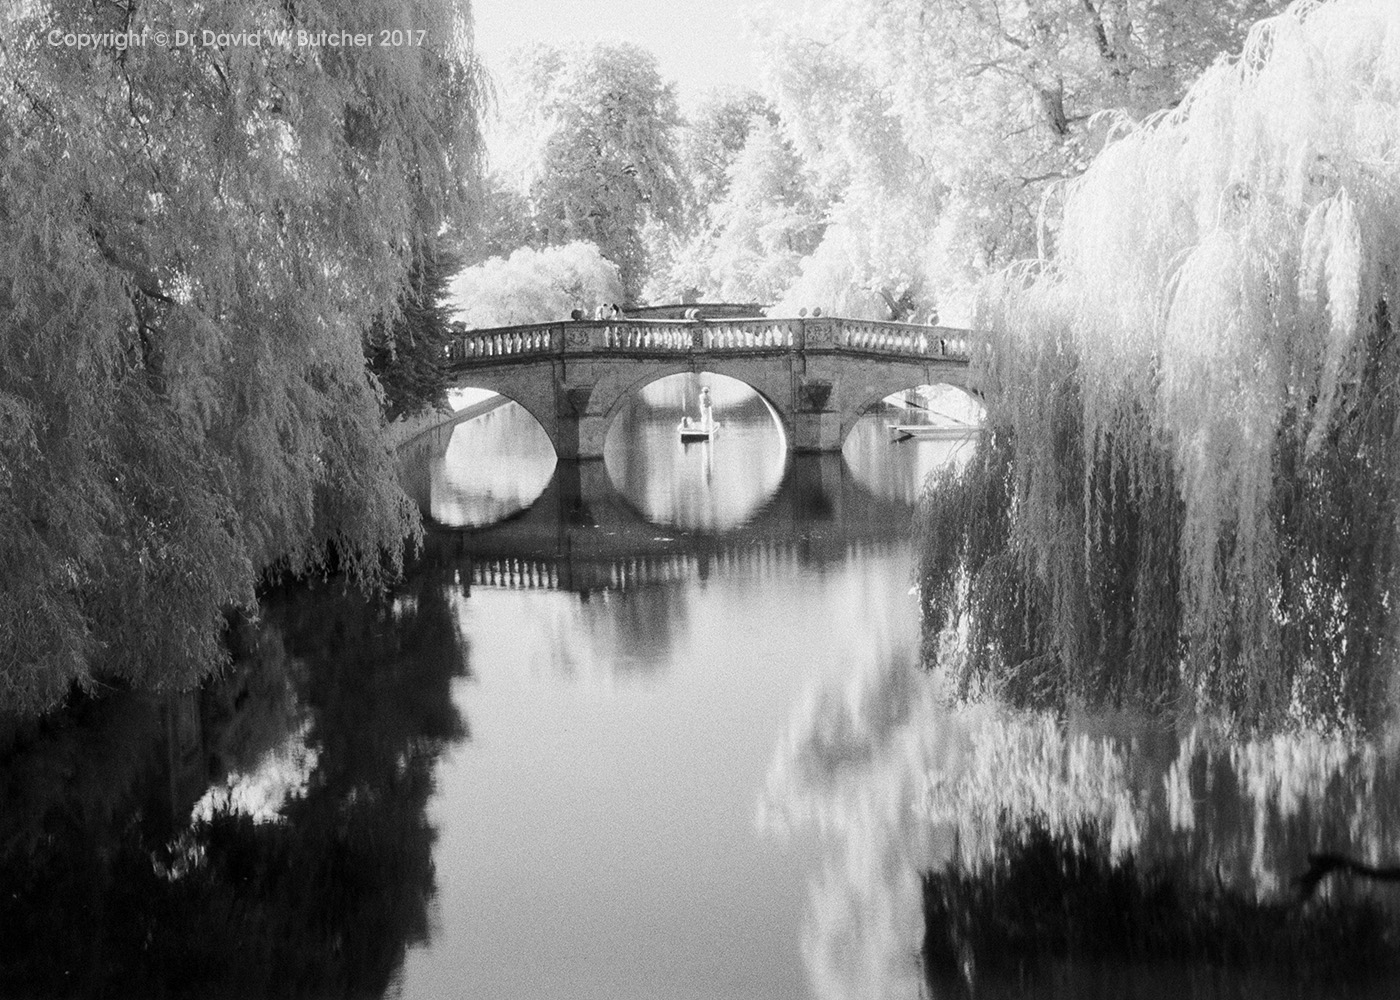 Cambridge Clare College Bridge and River Cam Reflections, England